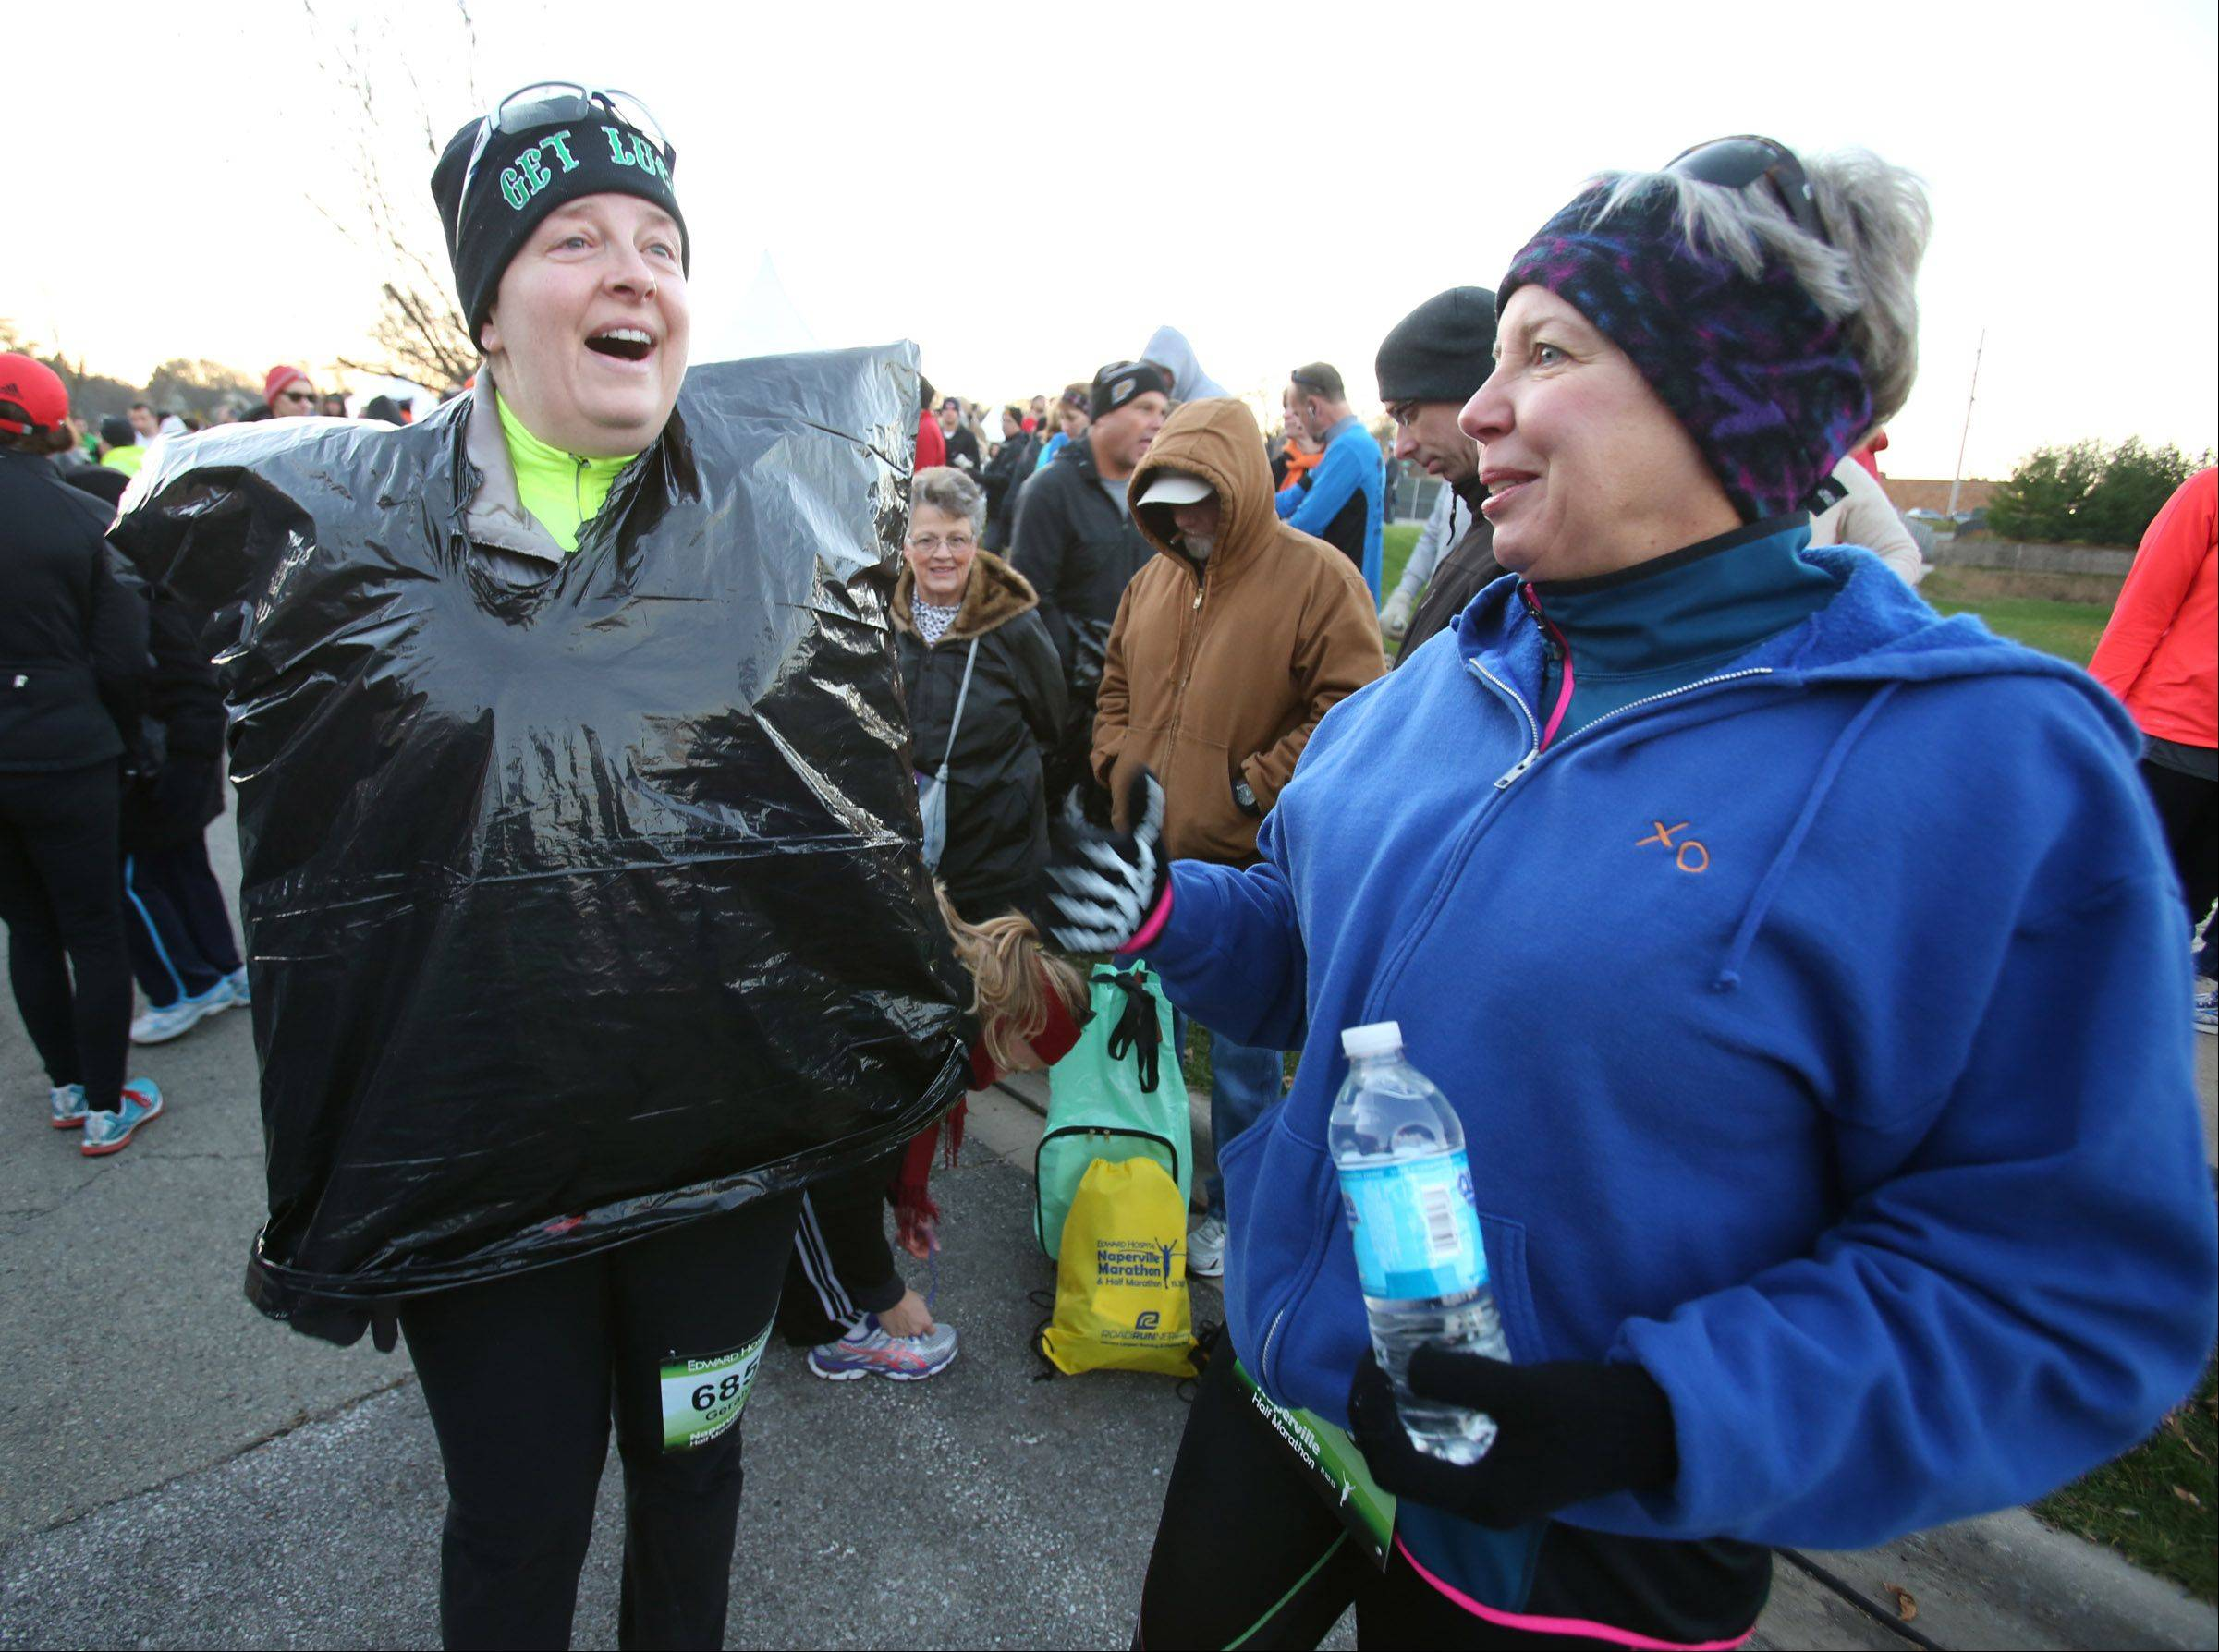 Lynn Walsh of Hinsdale, left, and Kristin Shulmar of Naperville talks about how nice the weather is just before the start of the Edward Hospital Naperville Marathon Sunday, November 10, 2013.